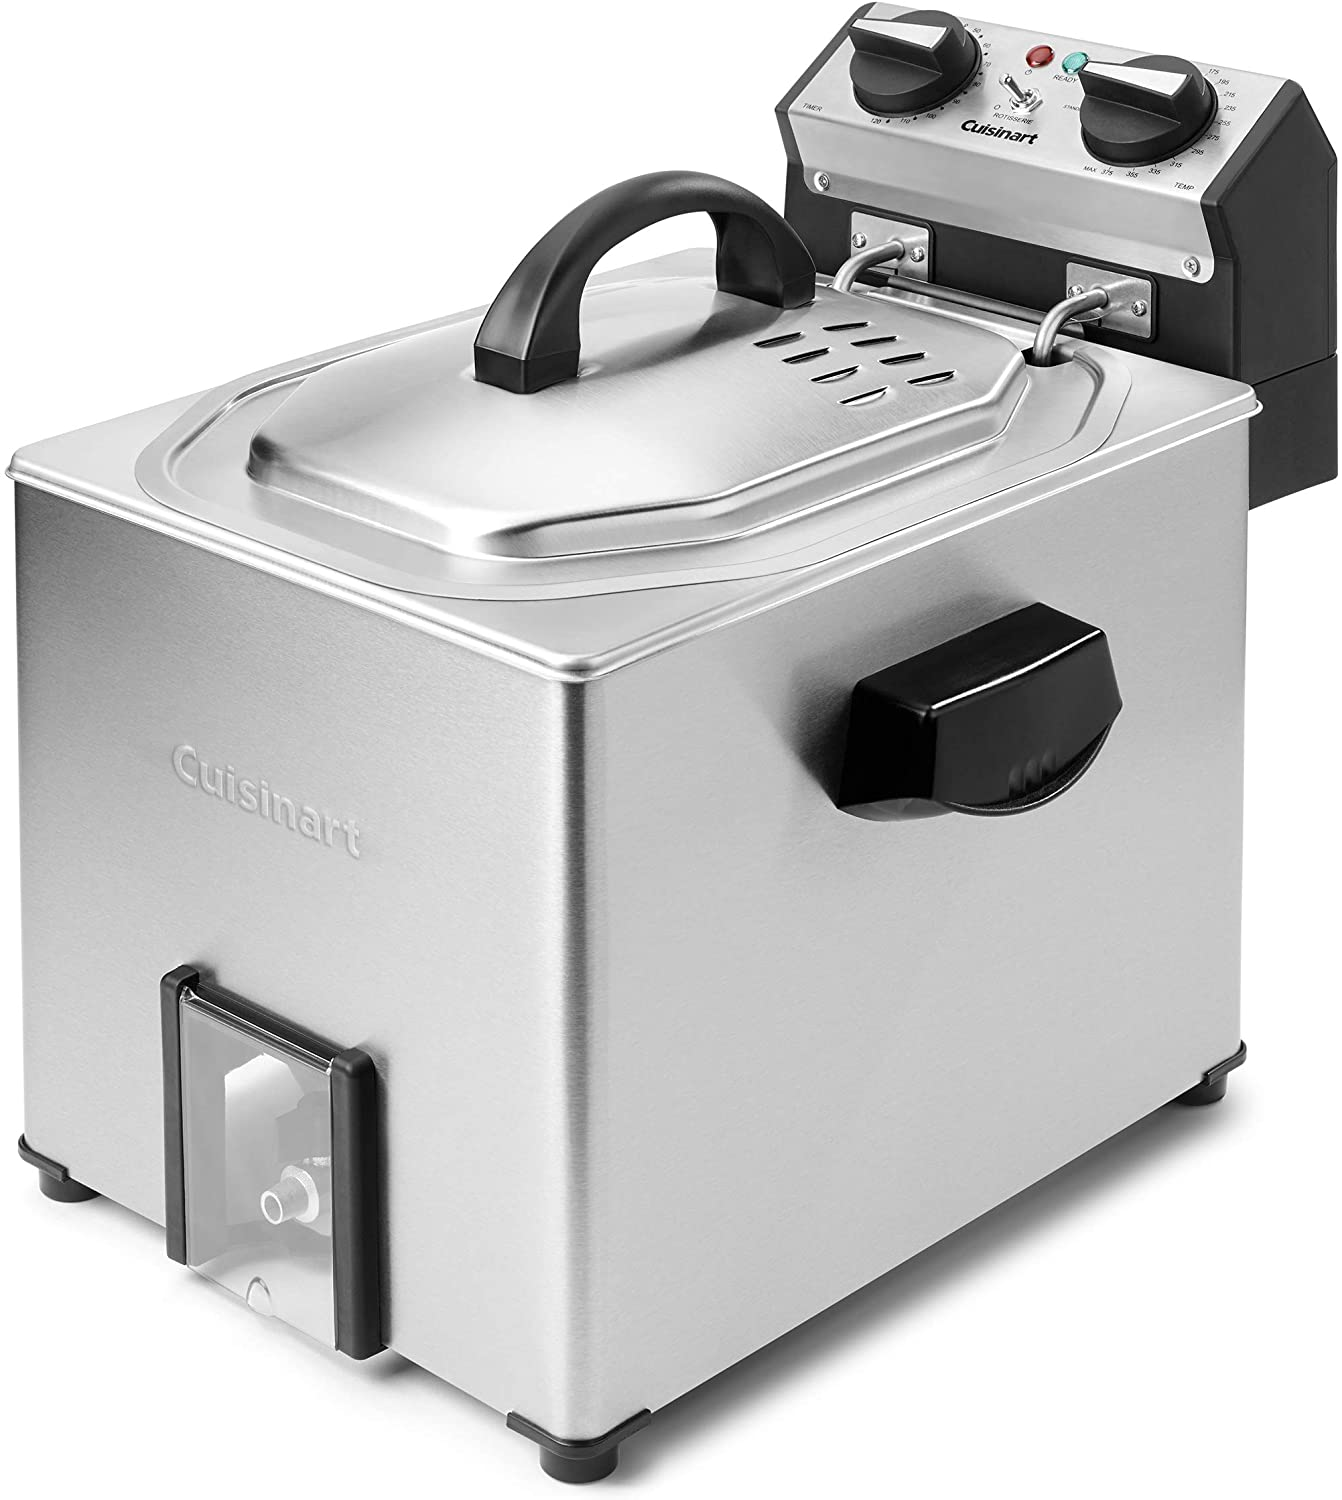 Review of Cuisinart CDF-500 Extra-Large Rotisserie Deep Fryer, Silver